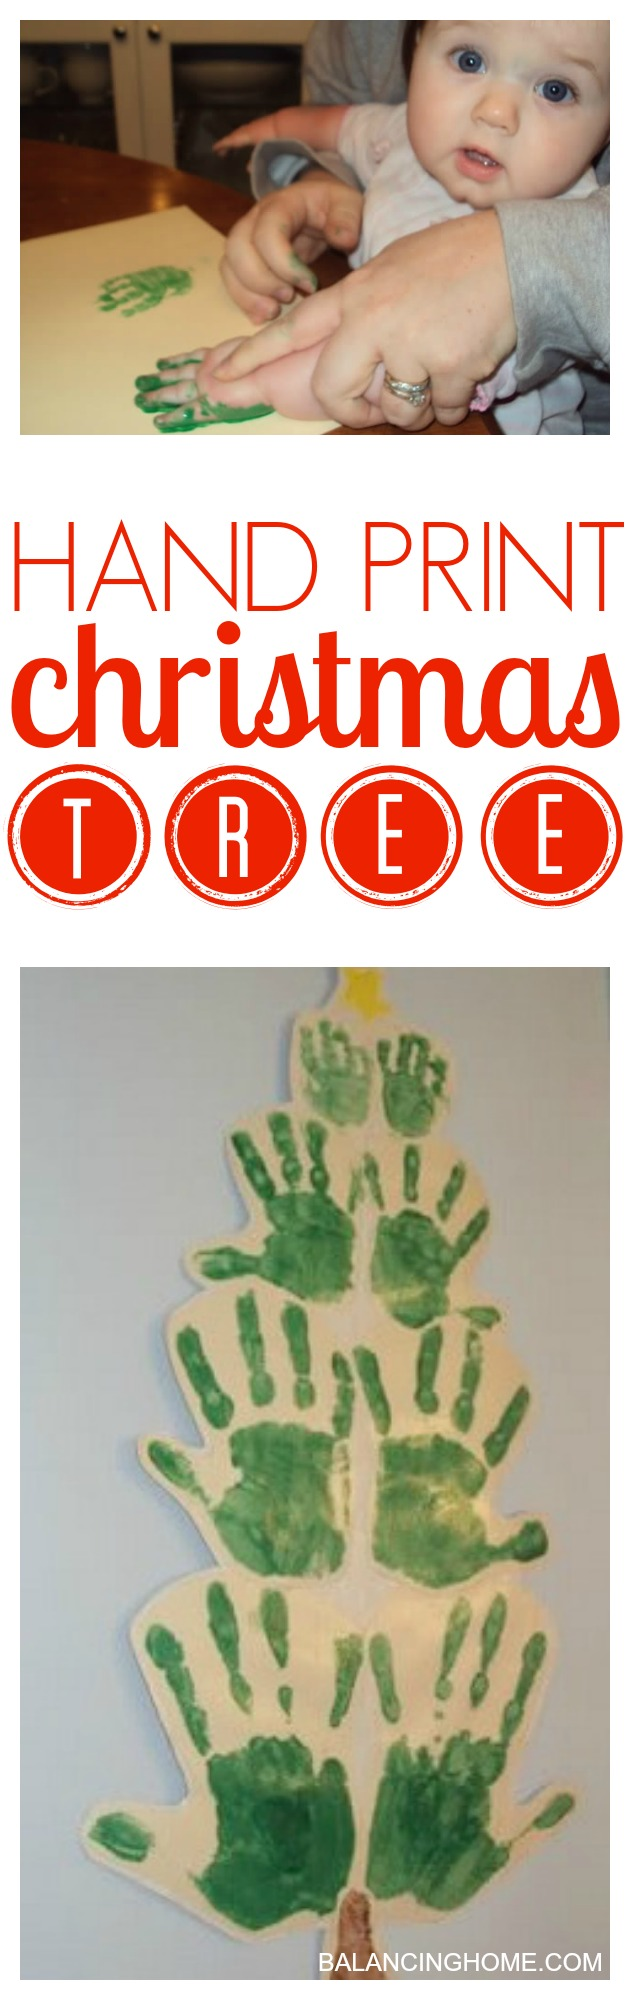 hand print Christmas tree- a super fun family Holiday craft.